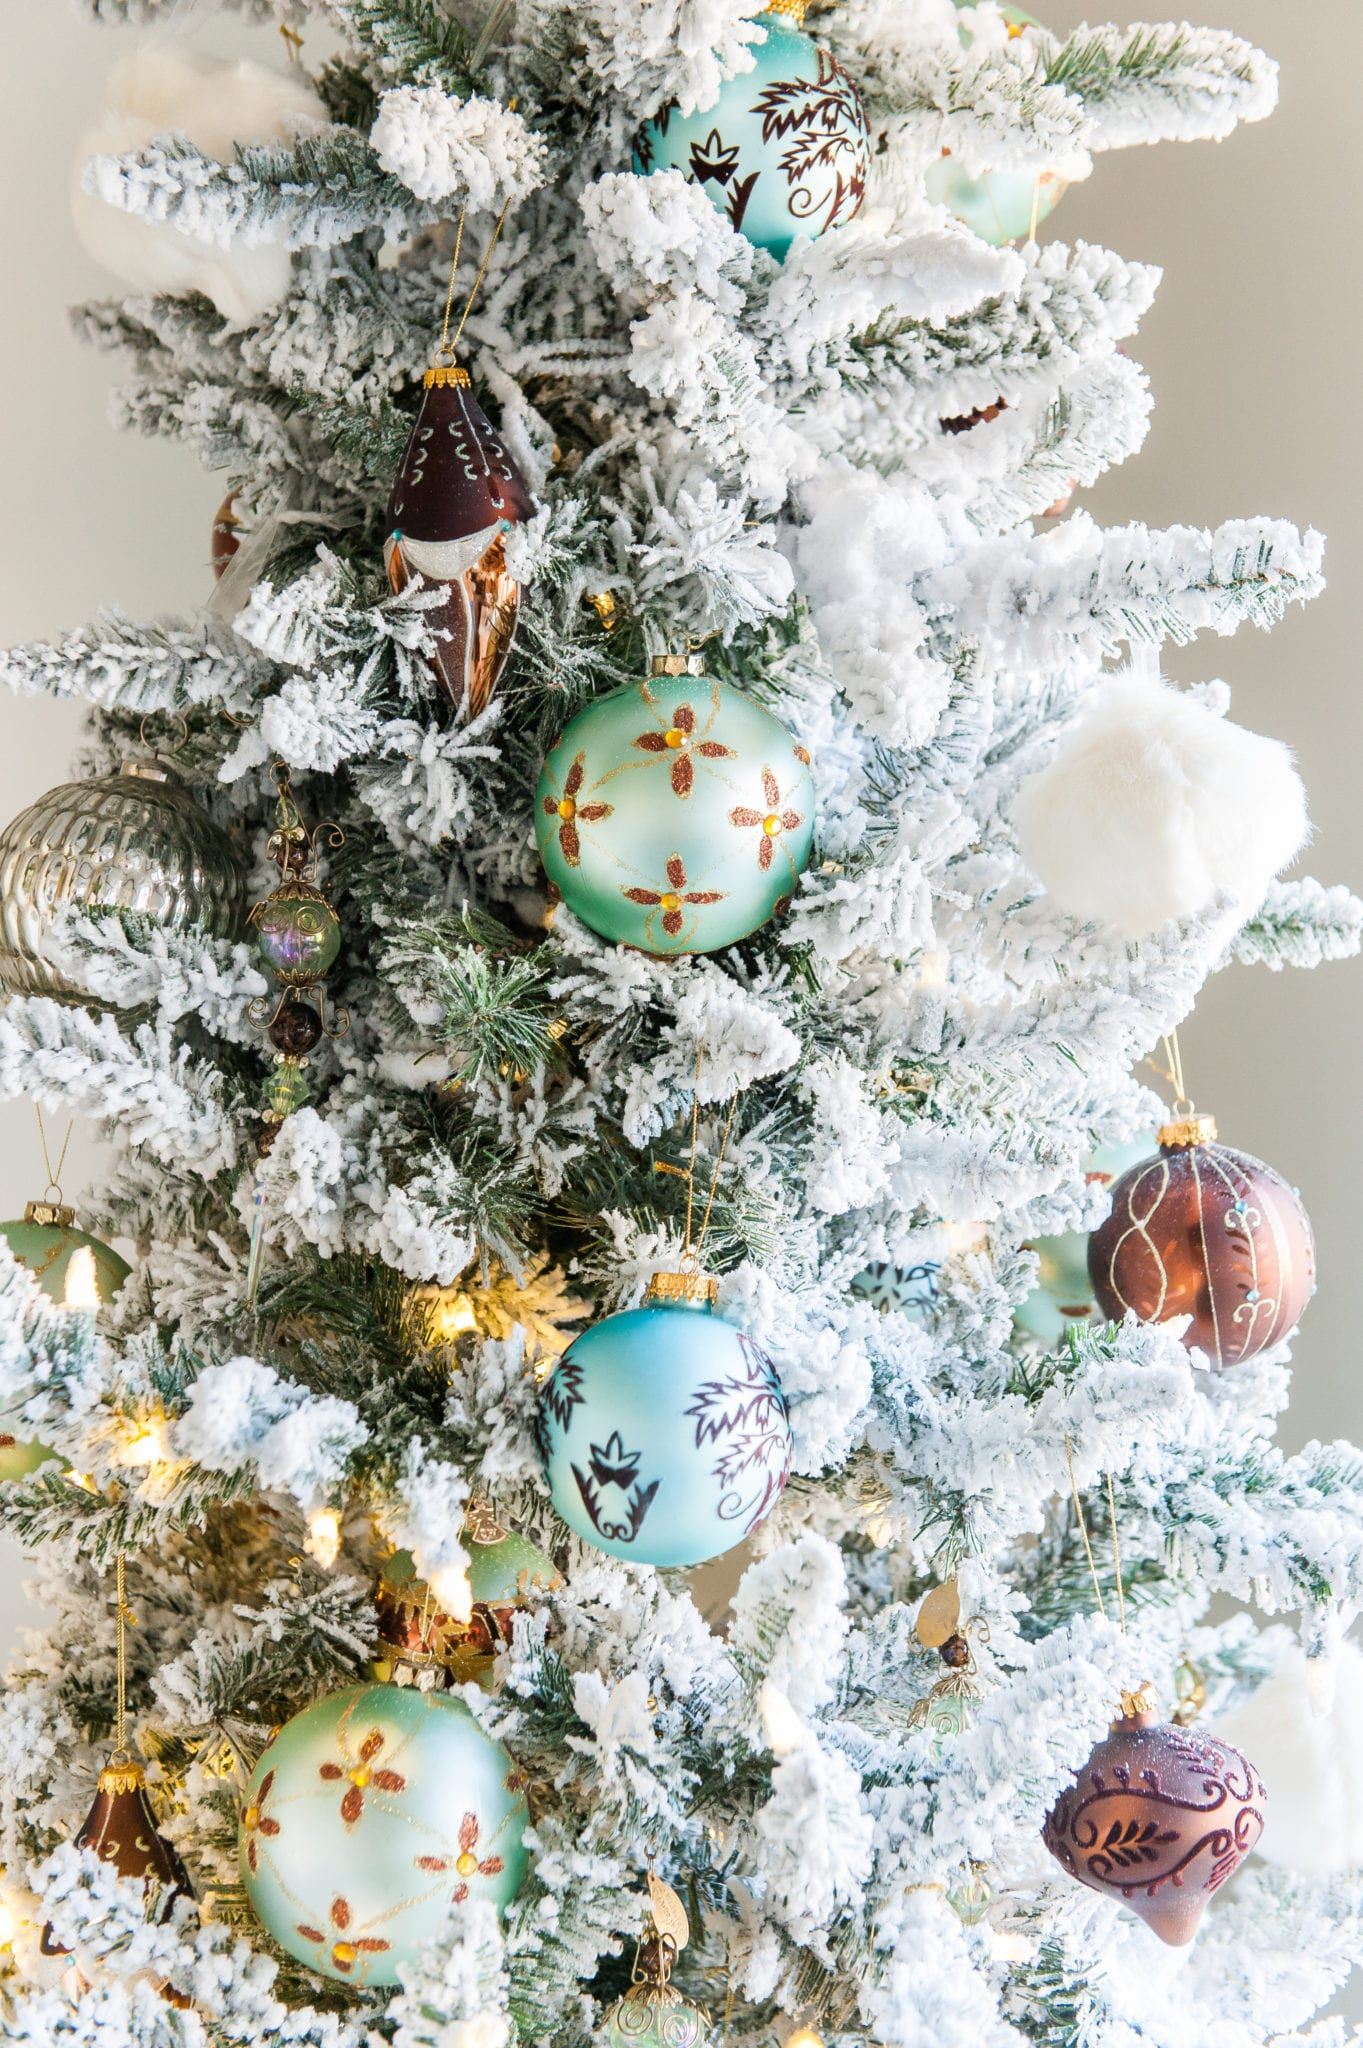 teal blue, brown and ivory christmas ornaments